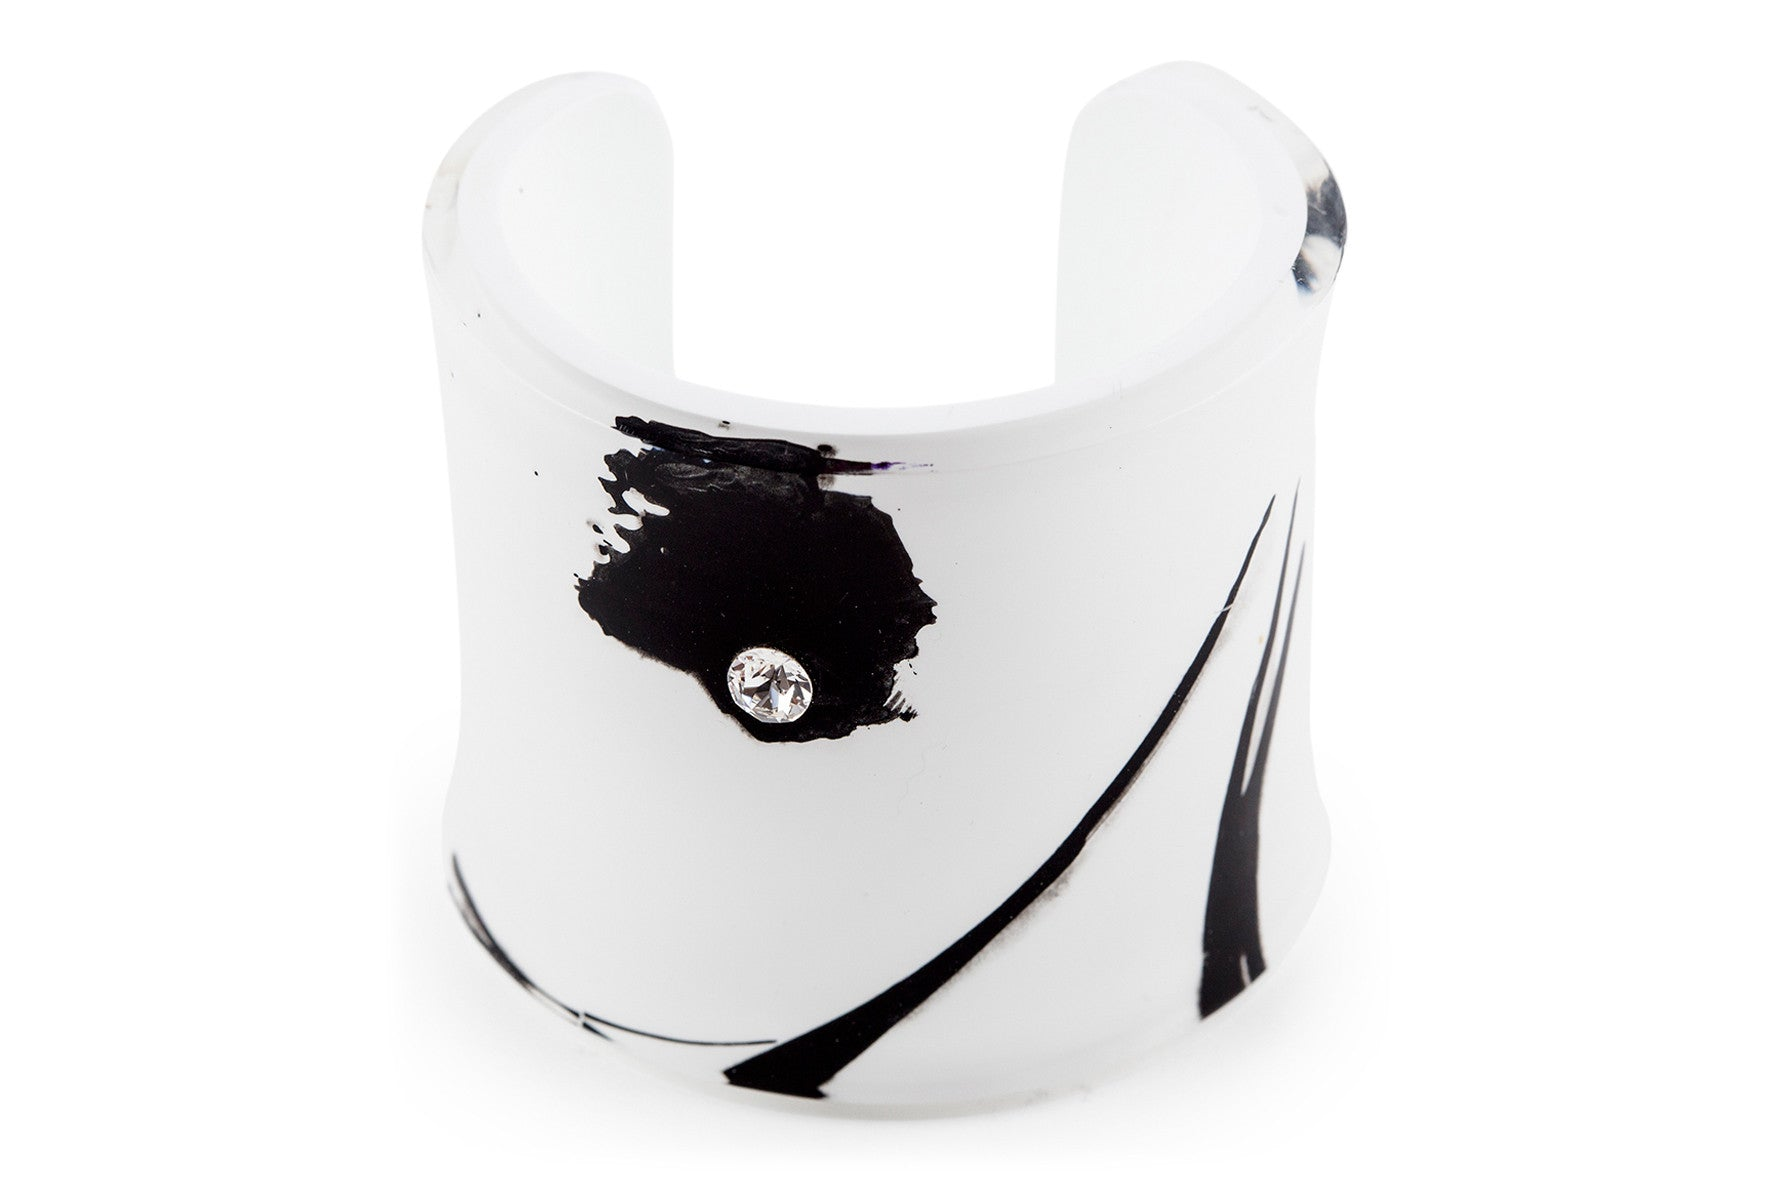 Cuff Mademoiselle (single stone) - Black and White/ Manchette Mademoiselle